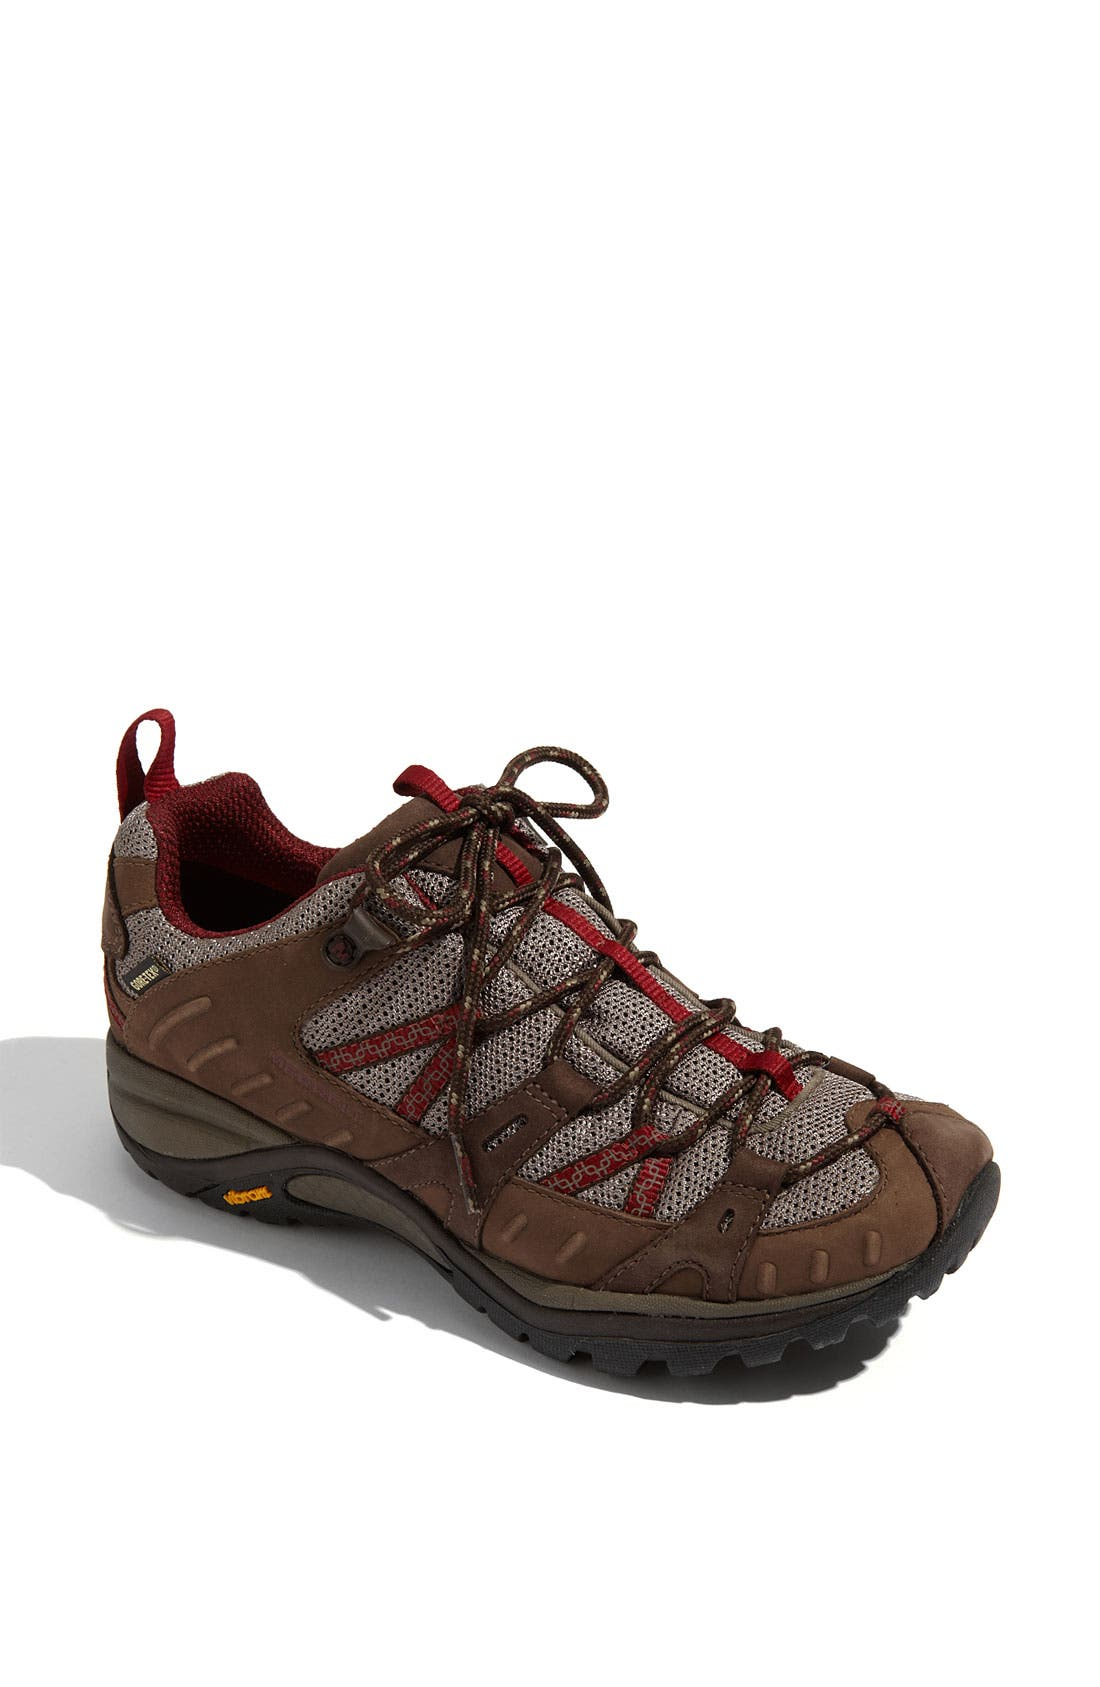 Main Image - Merrell 'Siren Sport Gore-Tex® XCR' Hiking Shoe (Women)